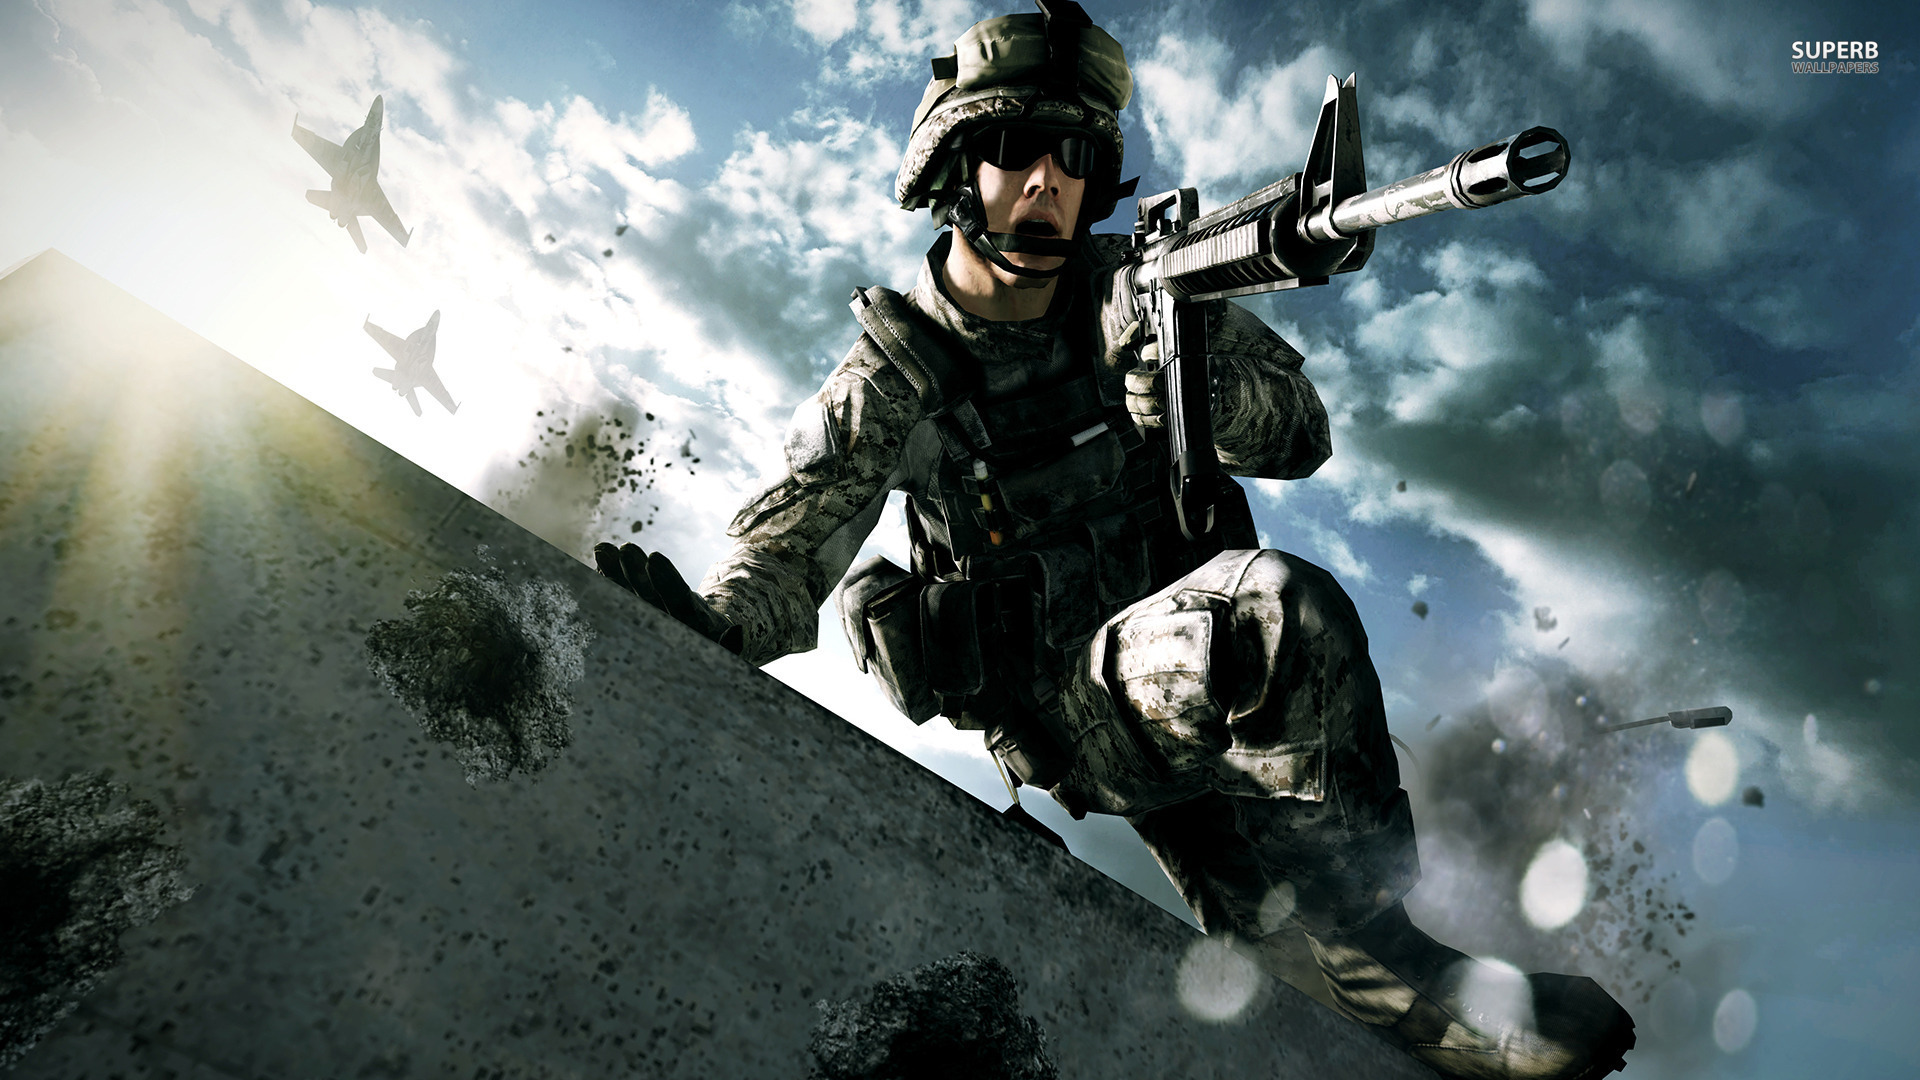 battlefield 4 hd wallpaper wallpapersafari